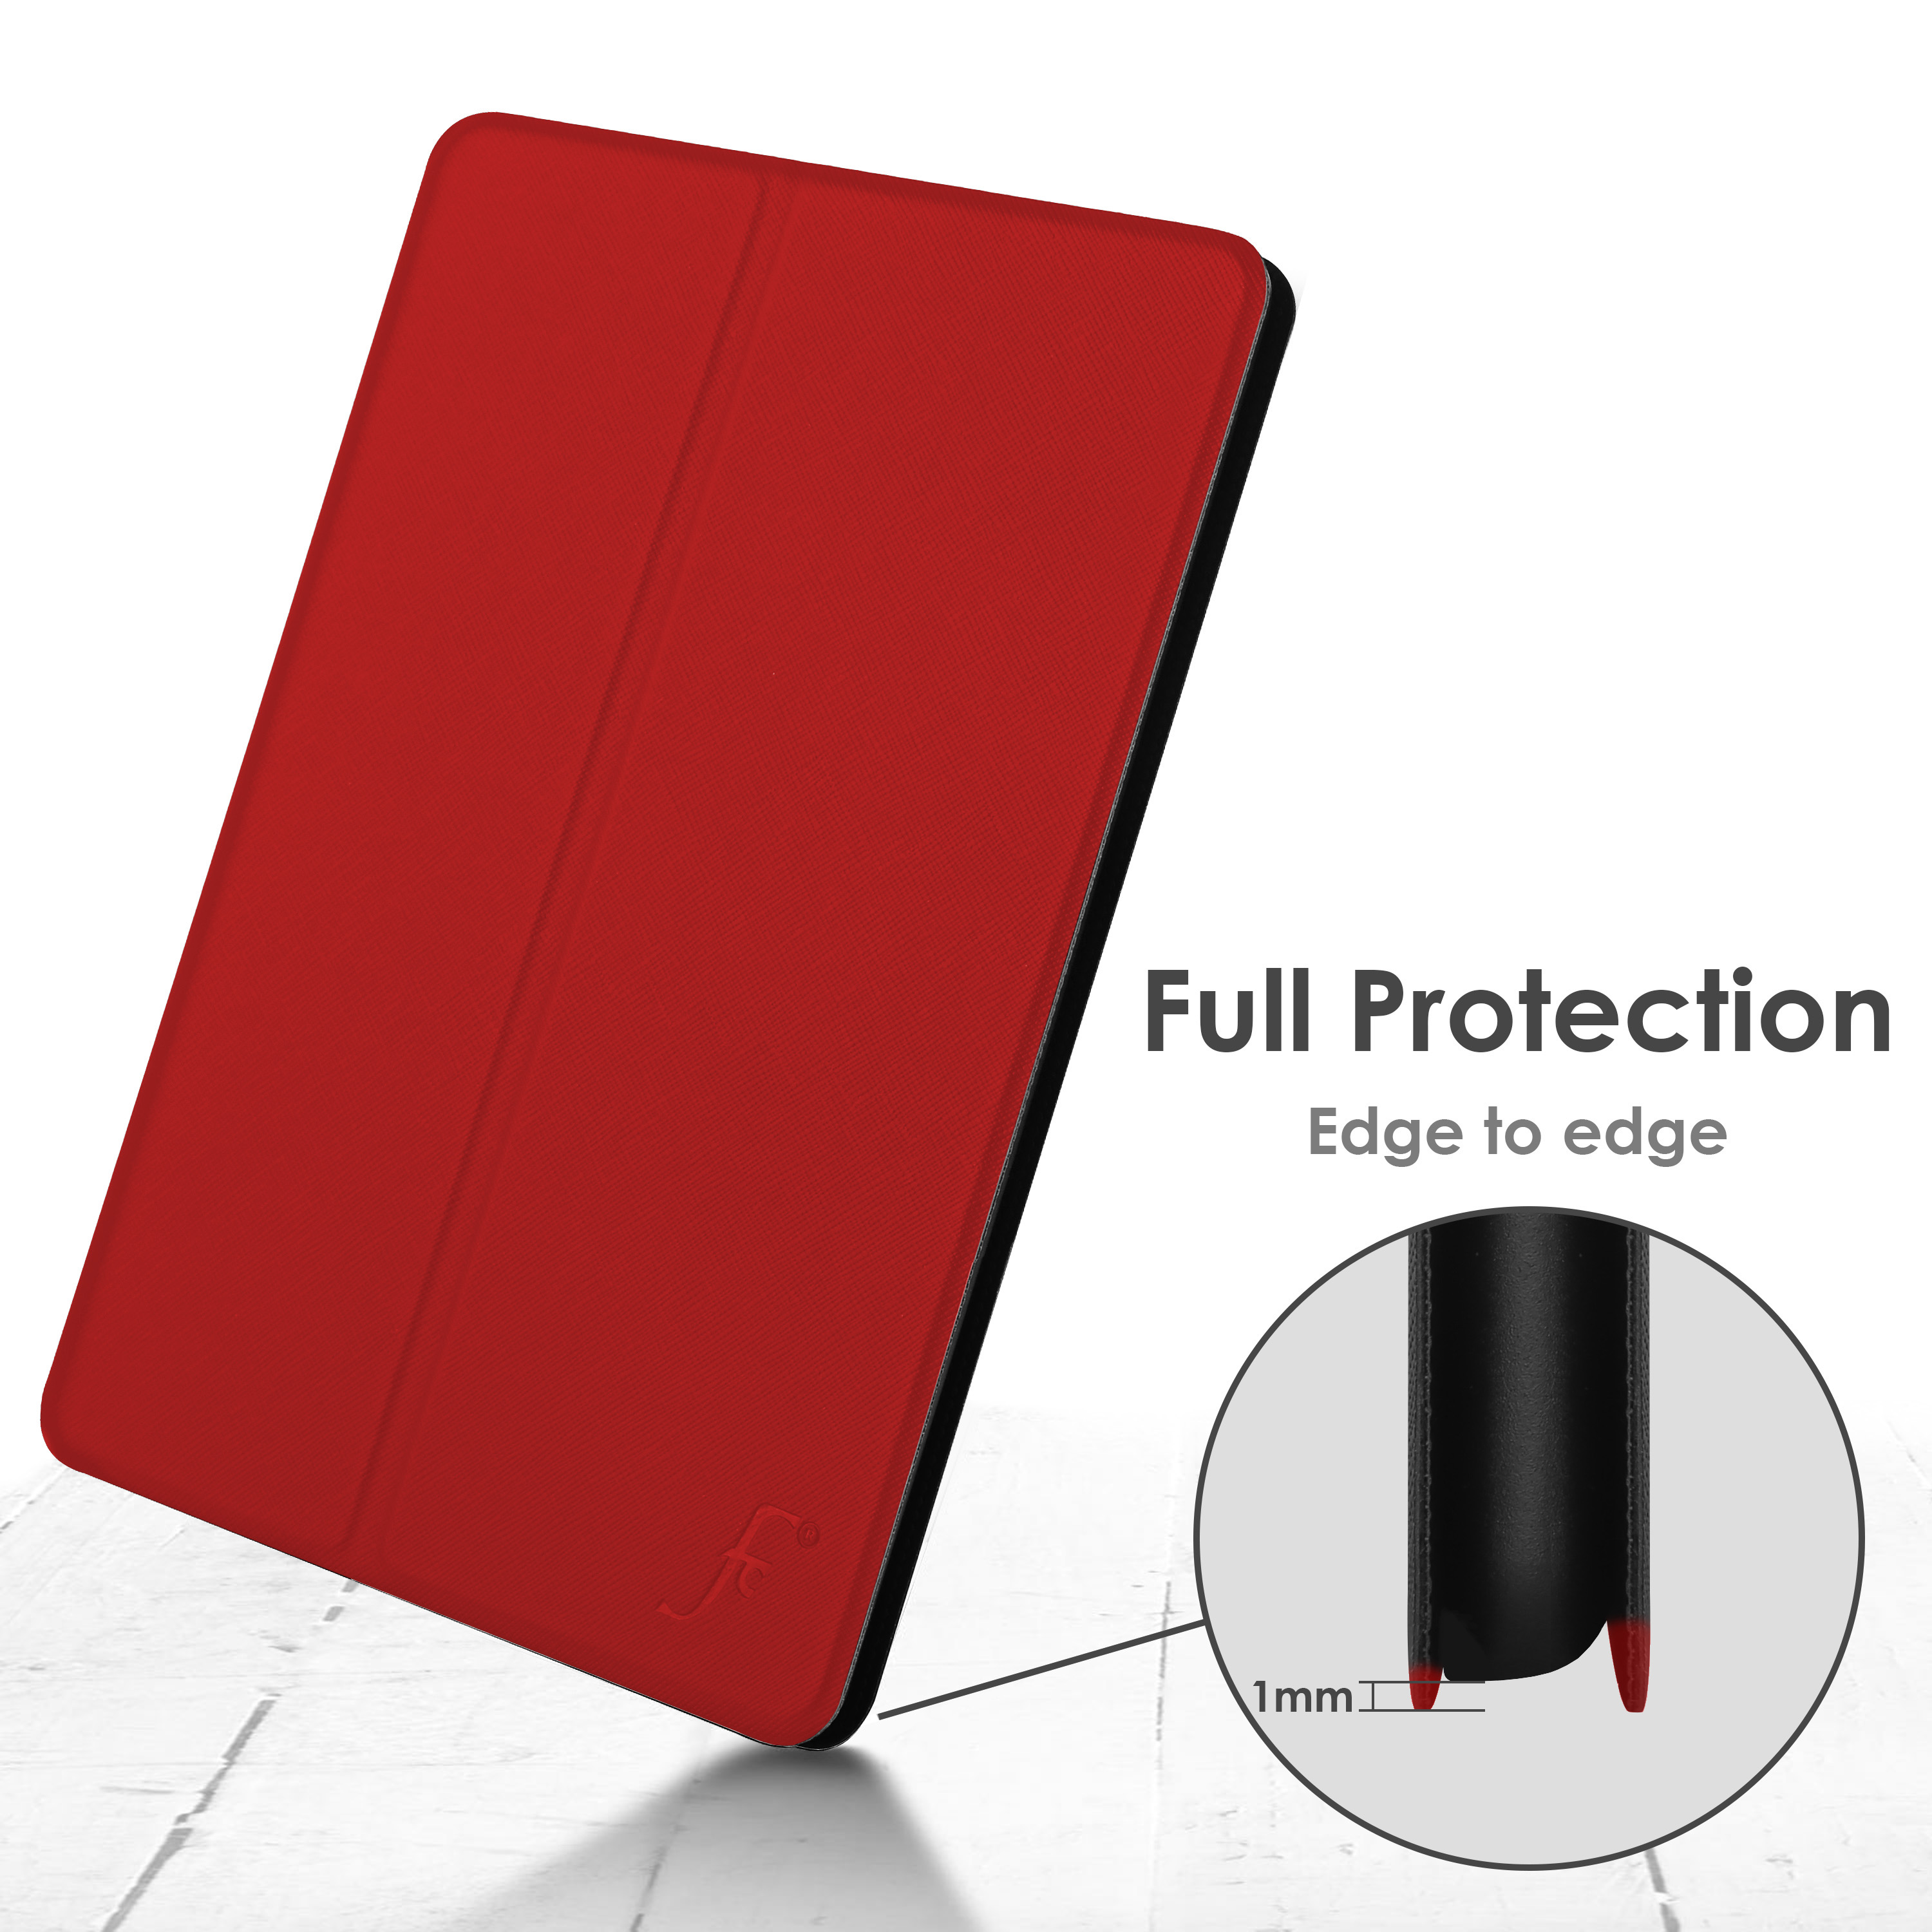 miniature 70 - Samsung Galaxy Tab A 10.1 2019 Étui Magnétique Protection & Support + Stylet